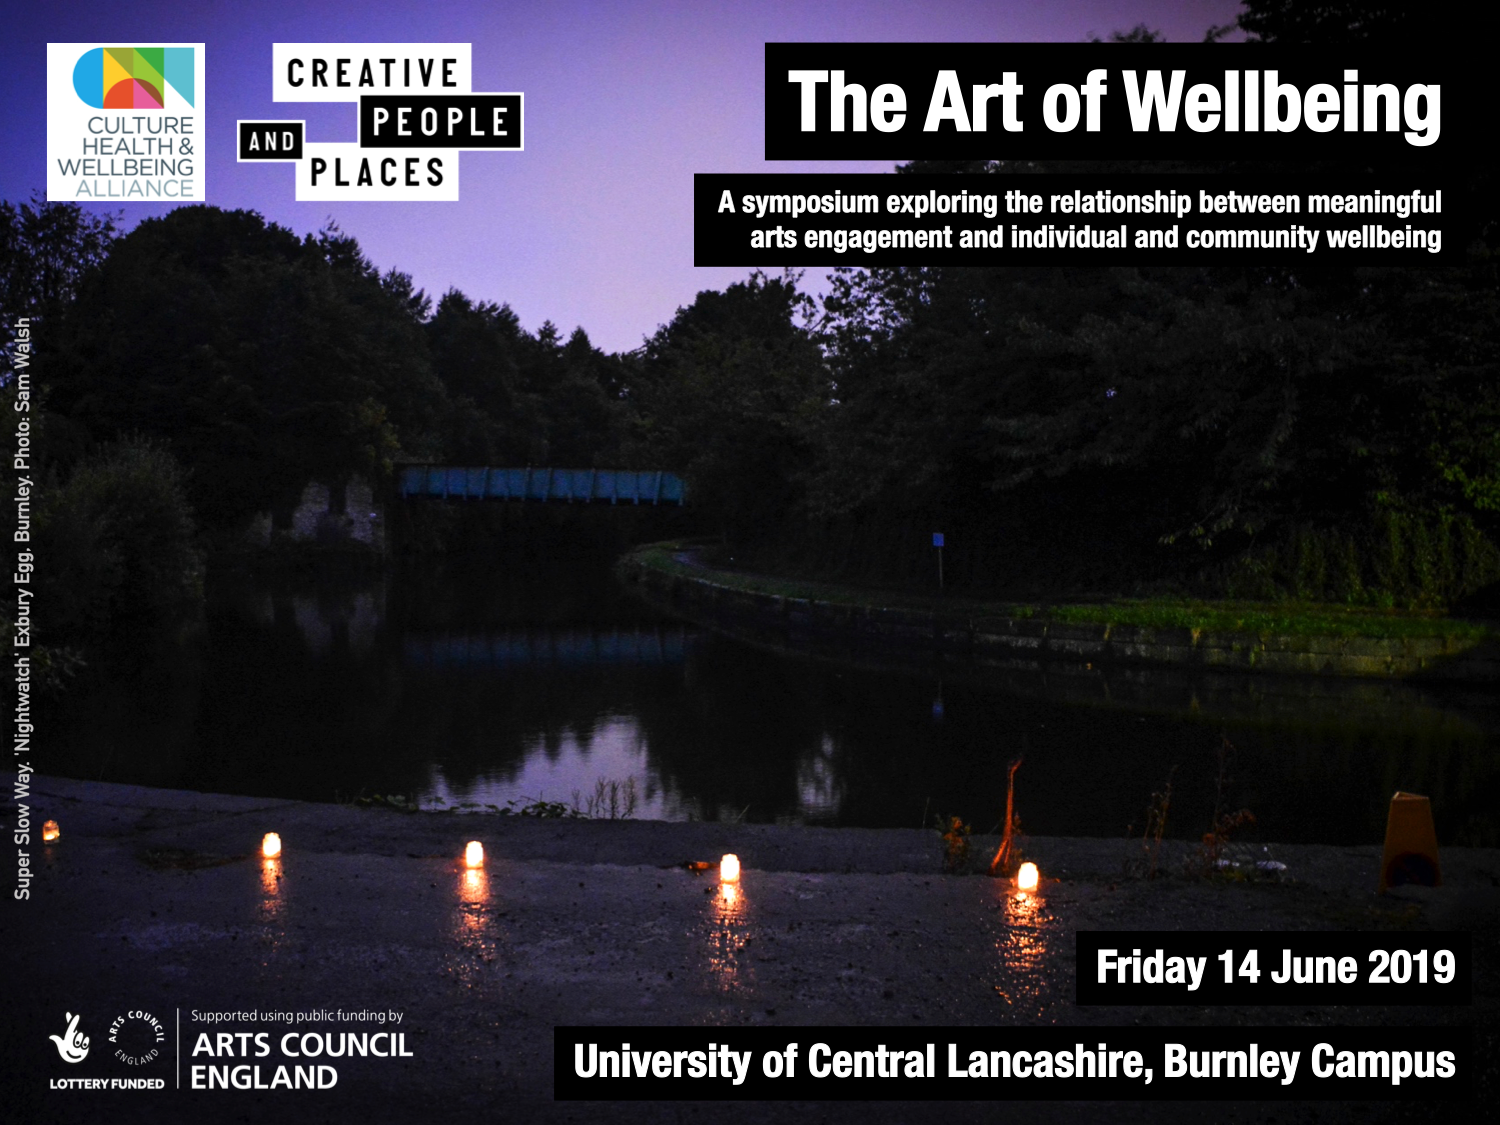 Marketing Image Art of Wellbeing FINAL small.png